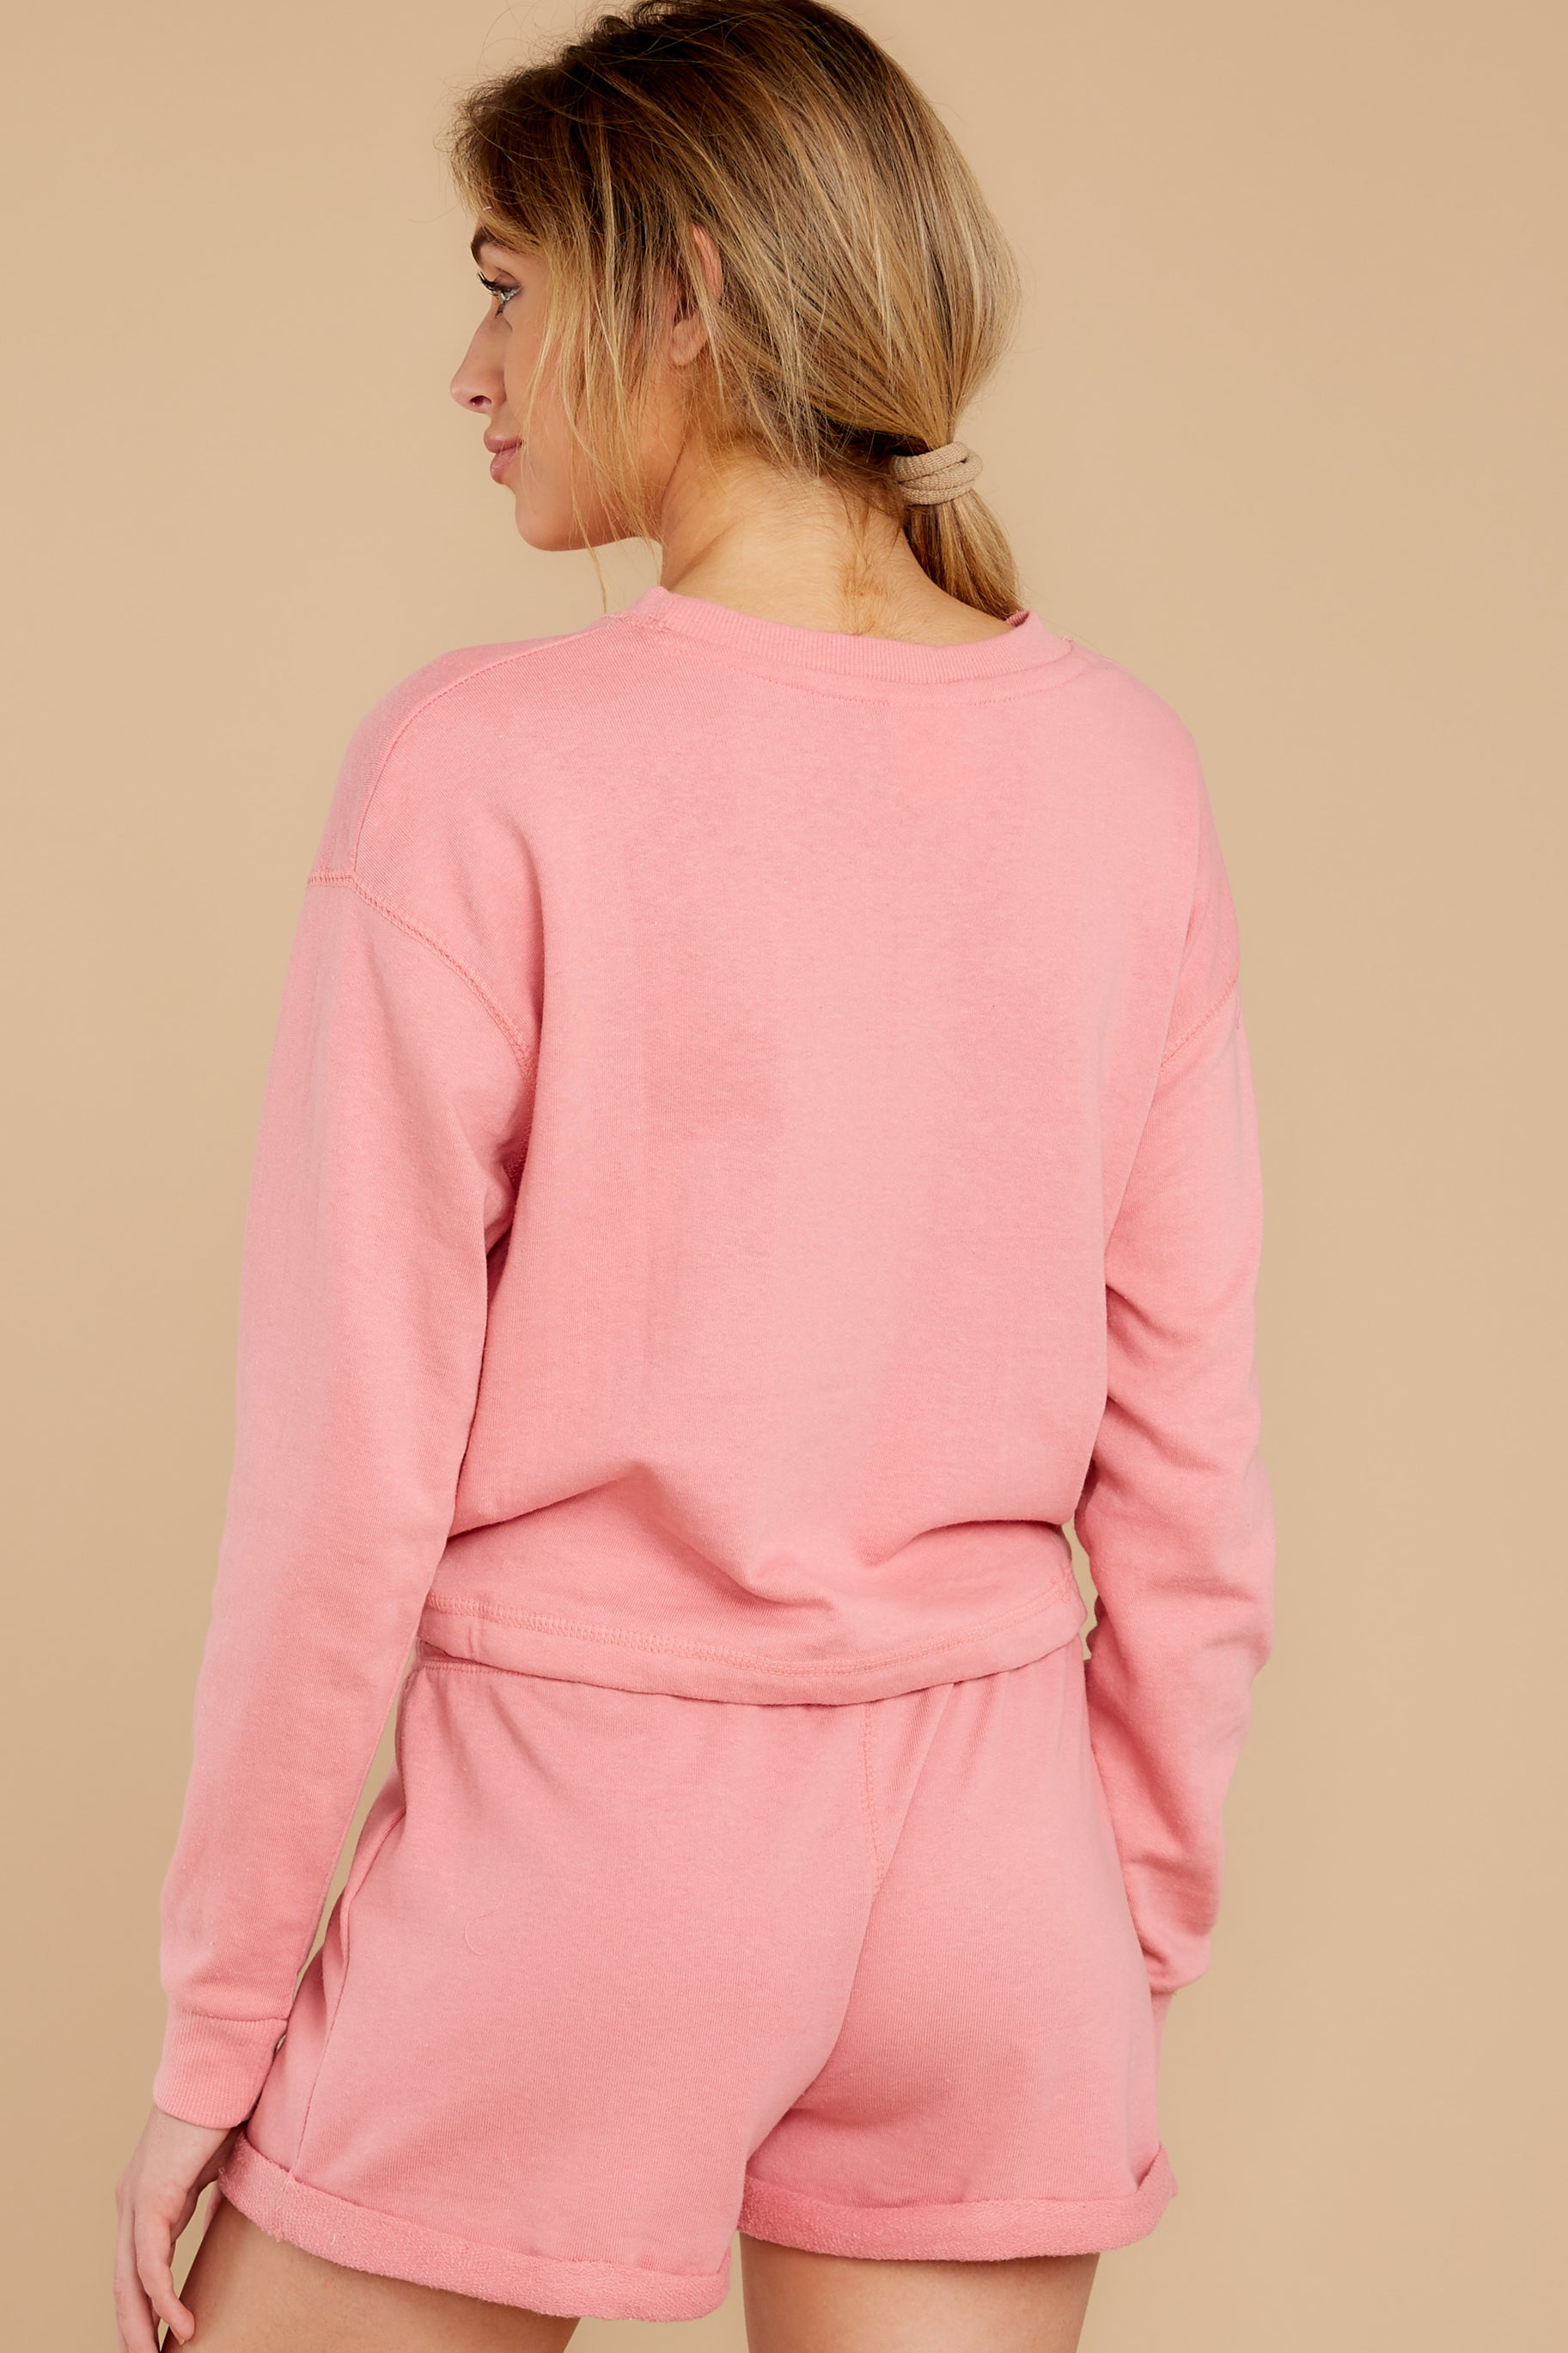 7 Cozy As Can Be Rose Pink Sweatshirt at reddress.com